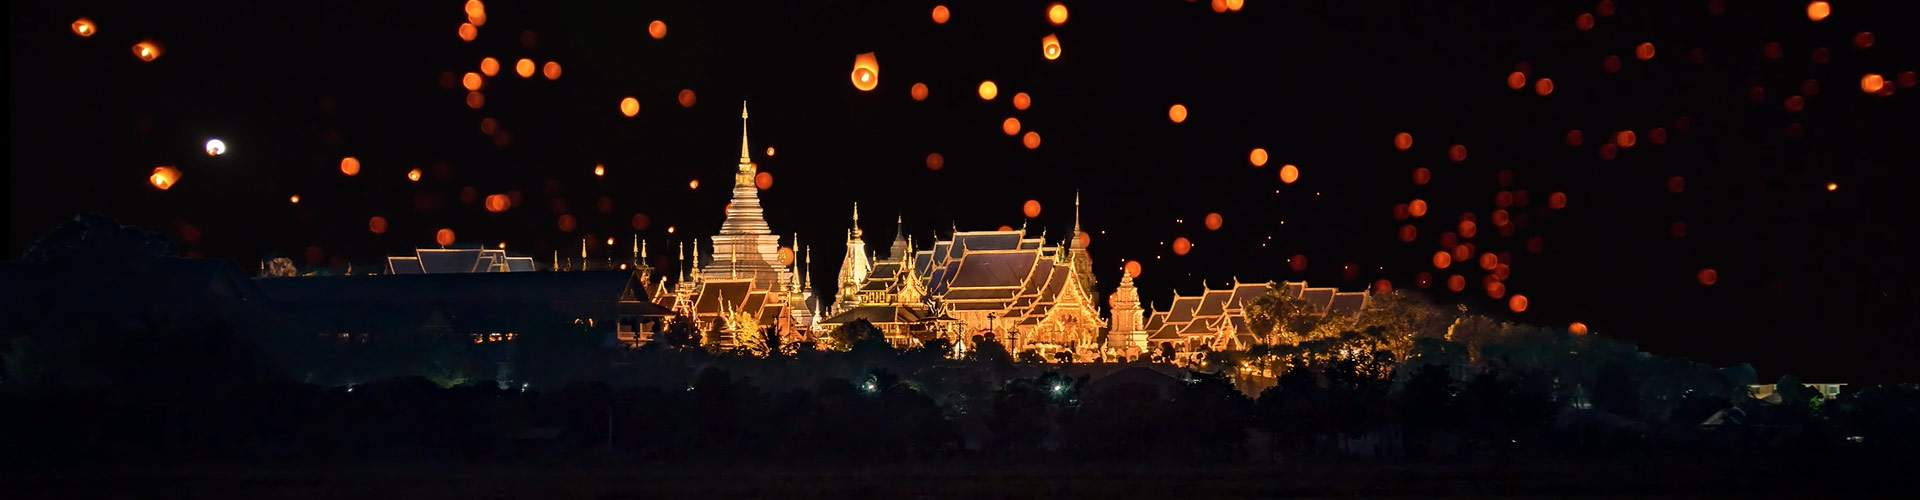 Wat Phra Singh at latern festival